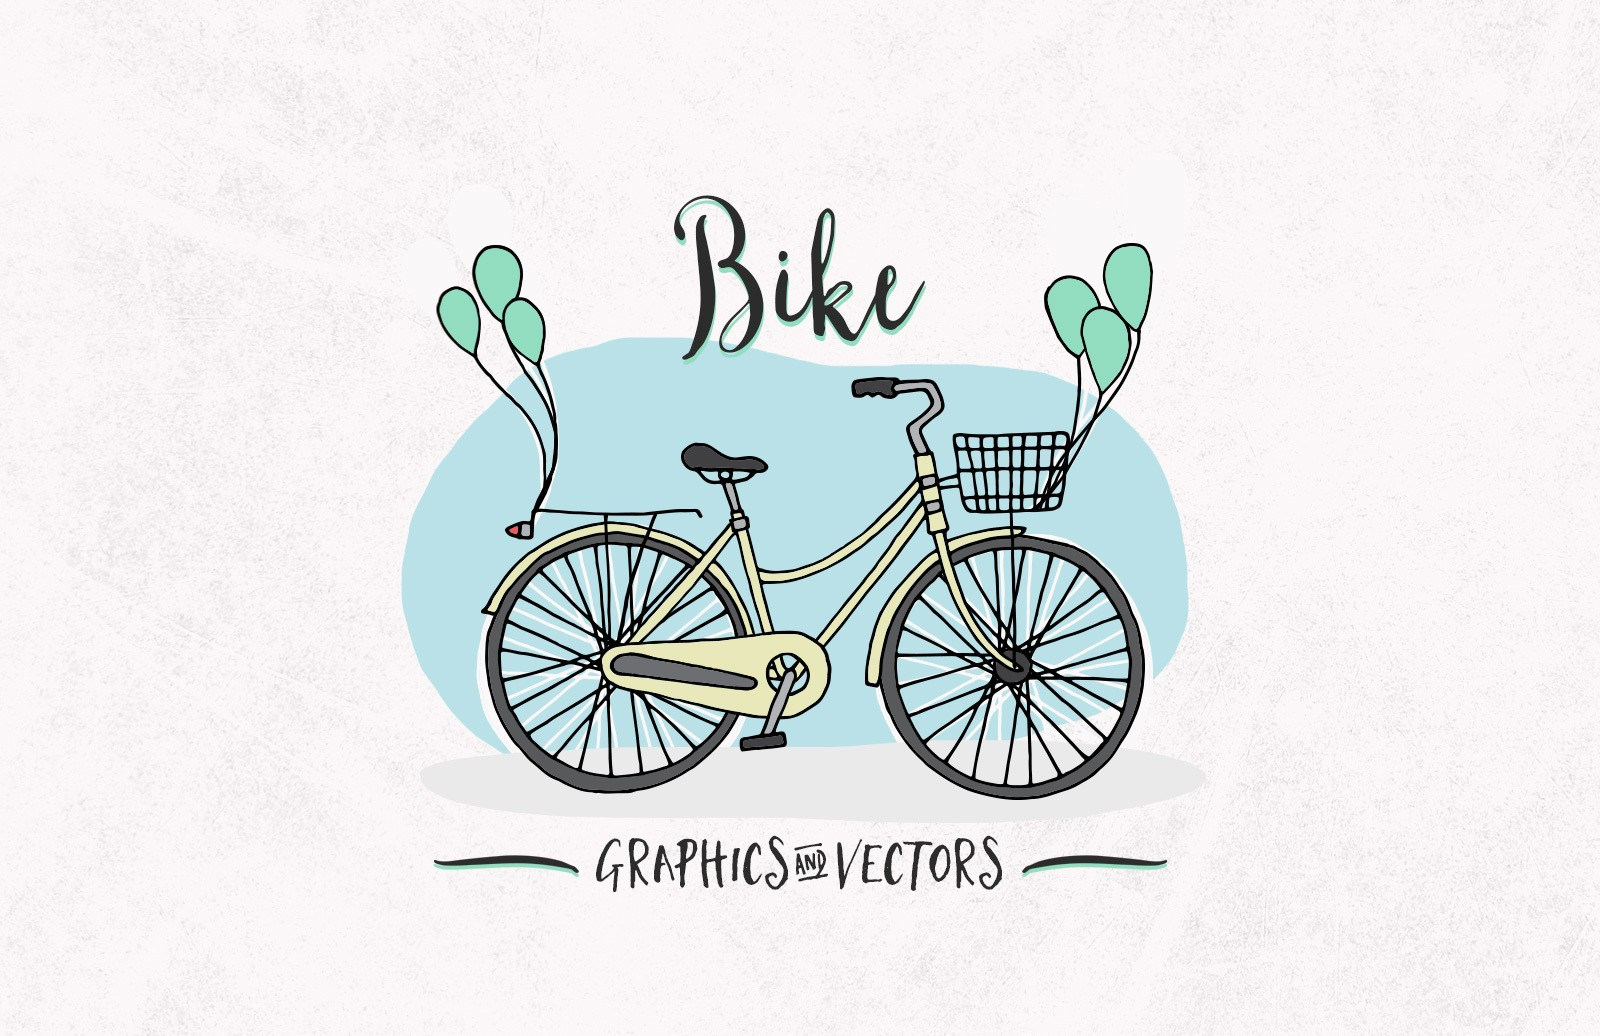 Bike Graphics & Vectors